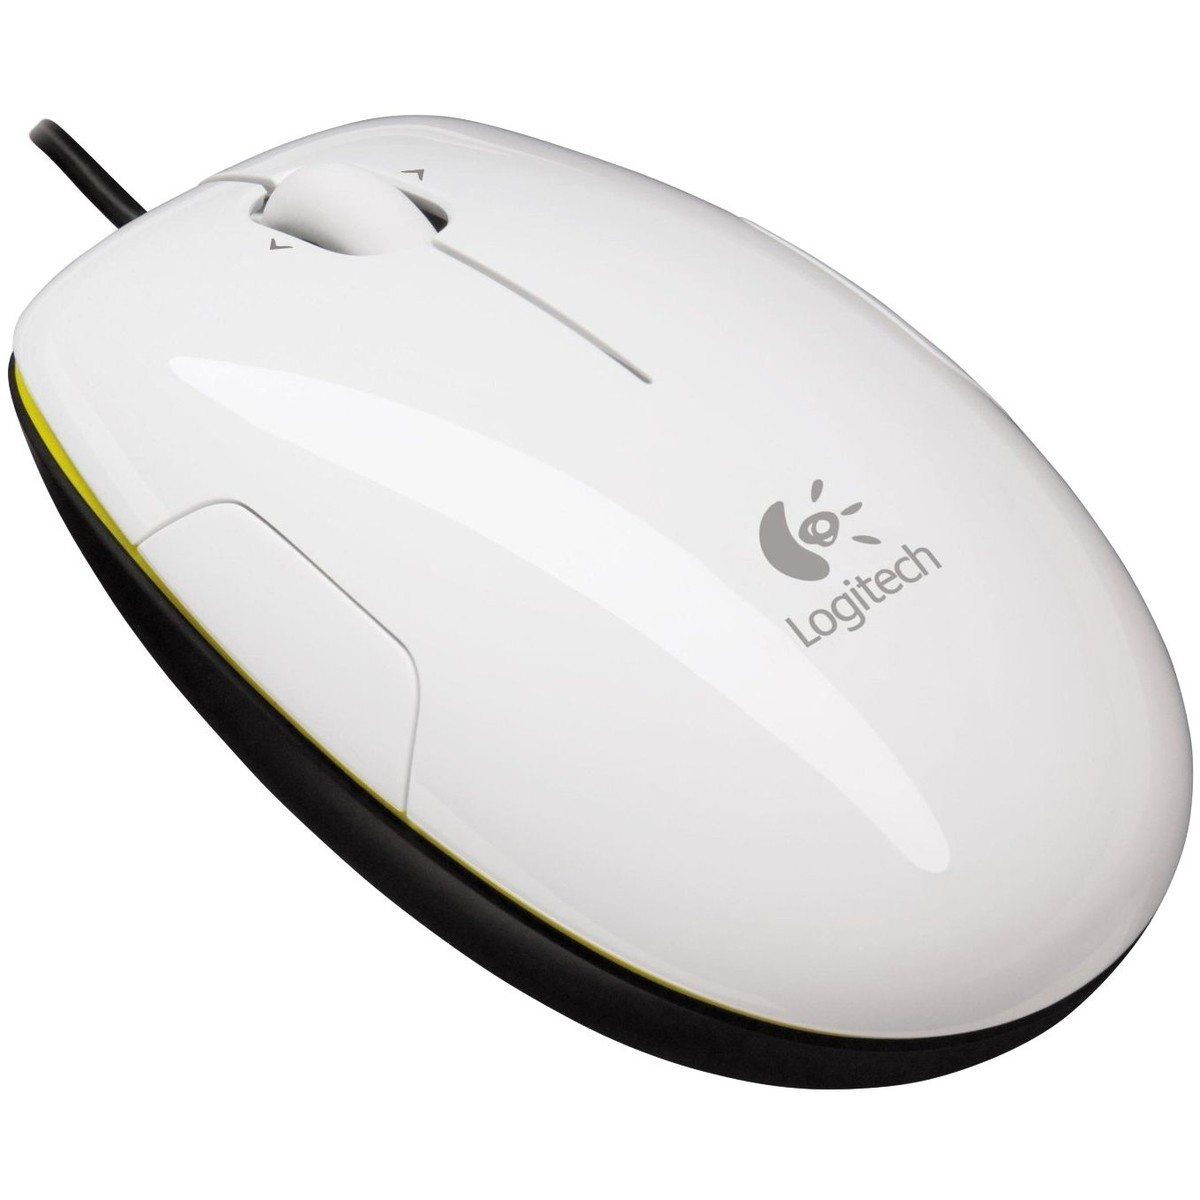 Logitech Mouse Logitech M150 Optic  Usb  Coconut